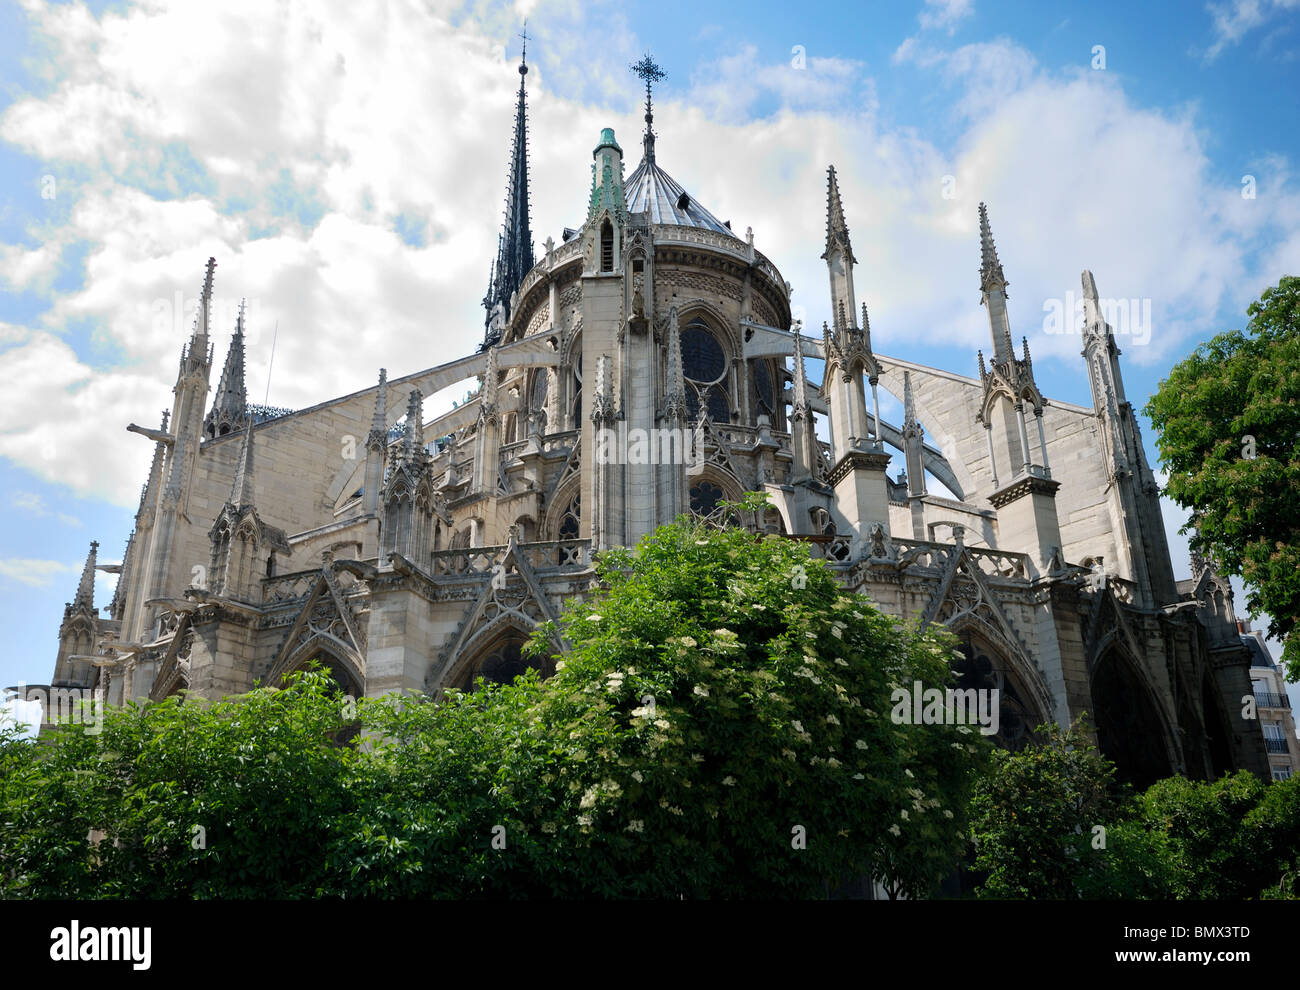 Notre Dame Cathedral view from backyard - Stock Image